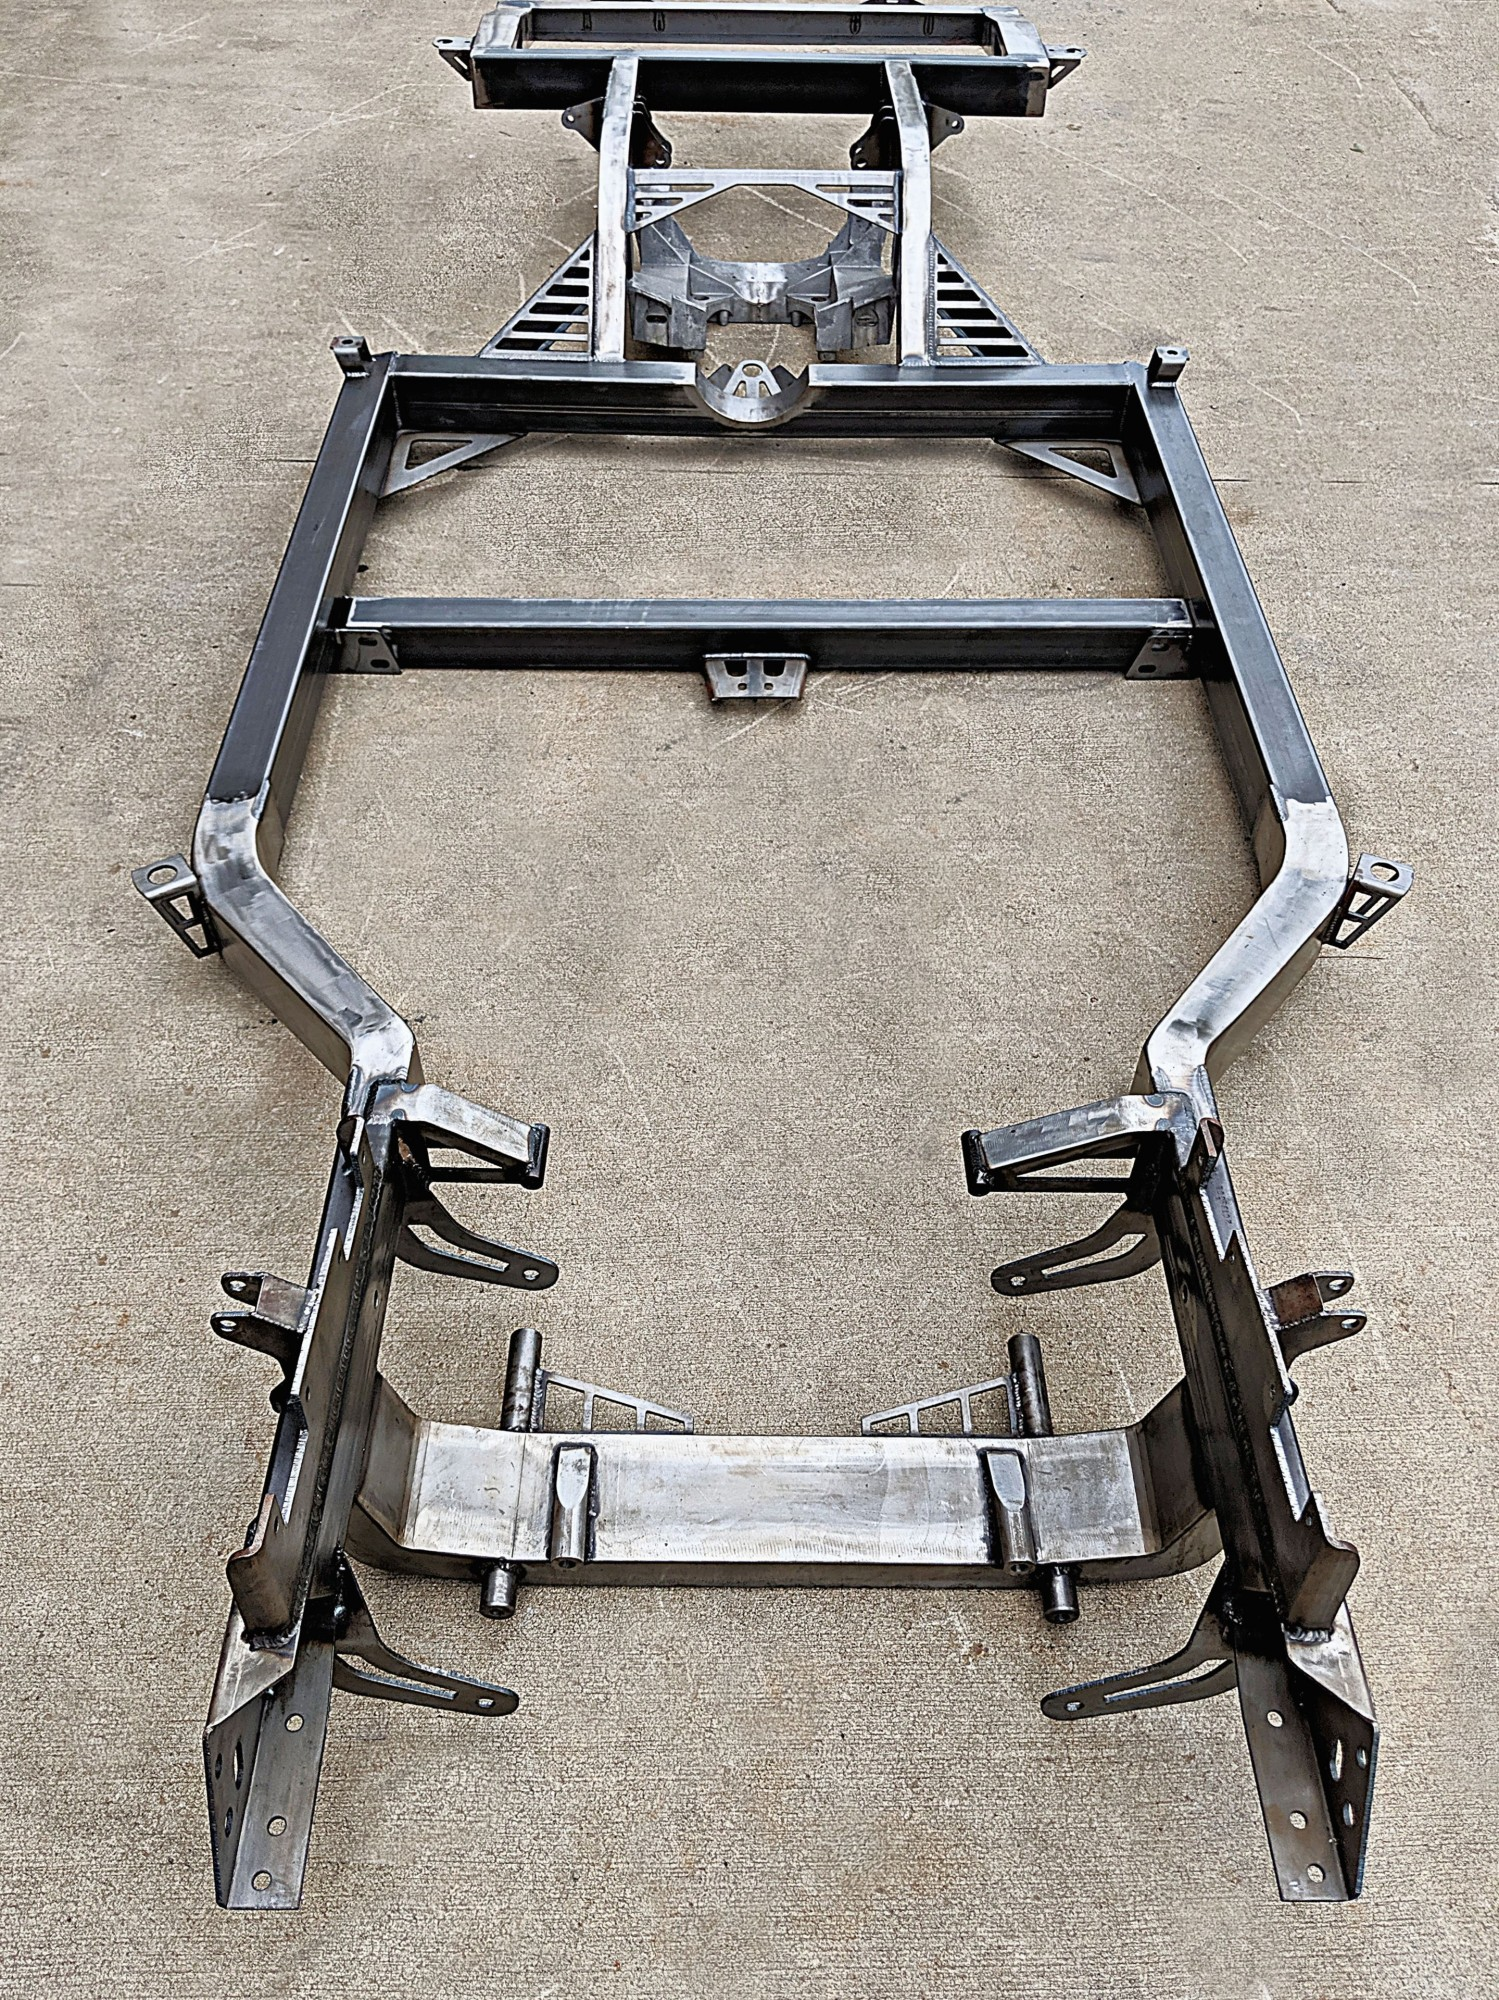 /upload/images/photo_album/bare_chassis_front_view